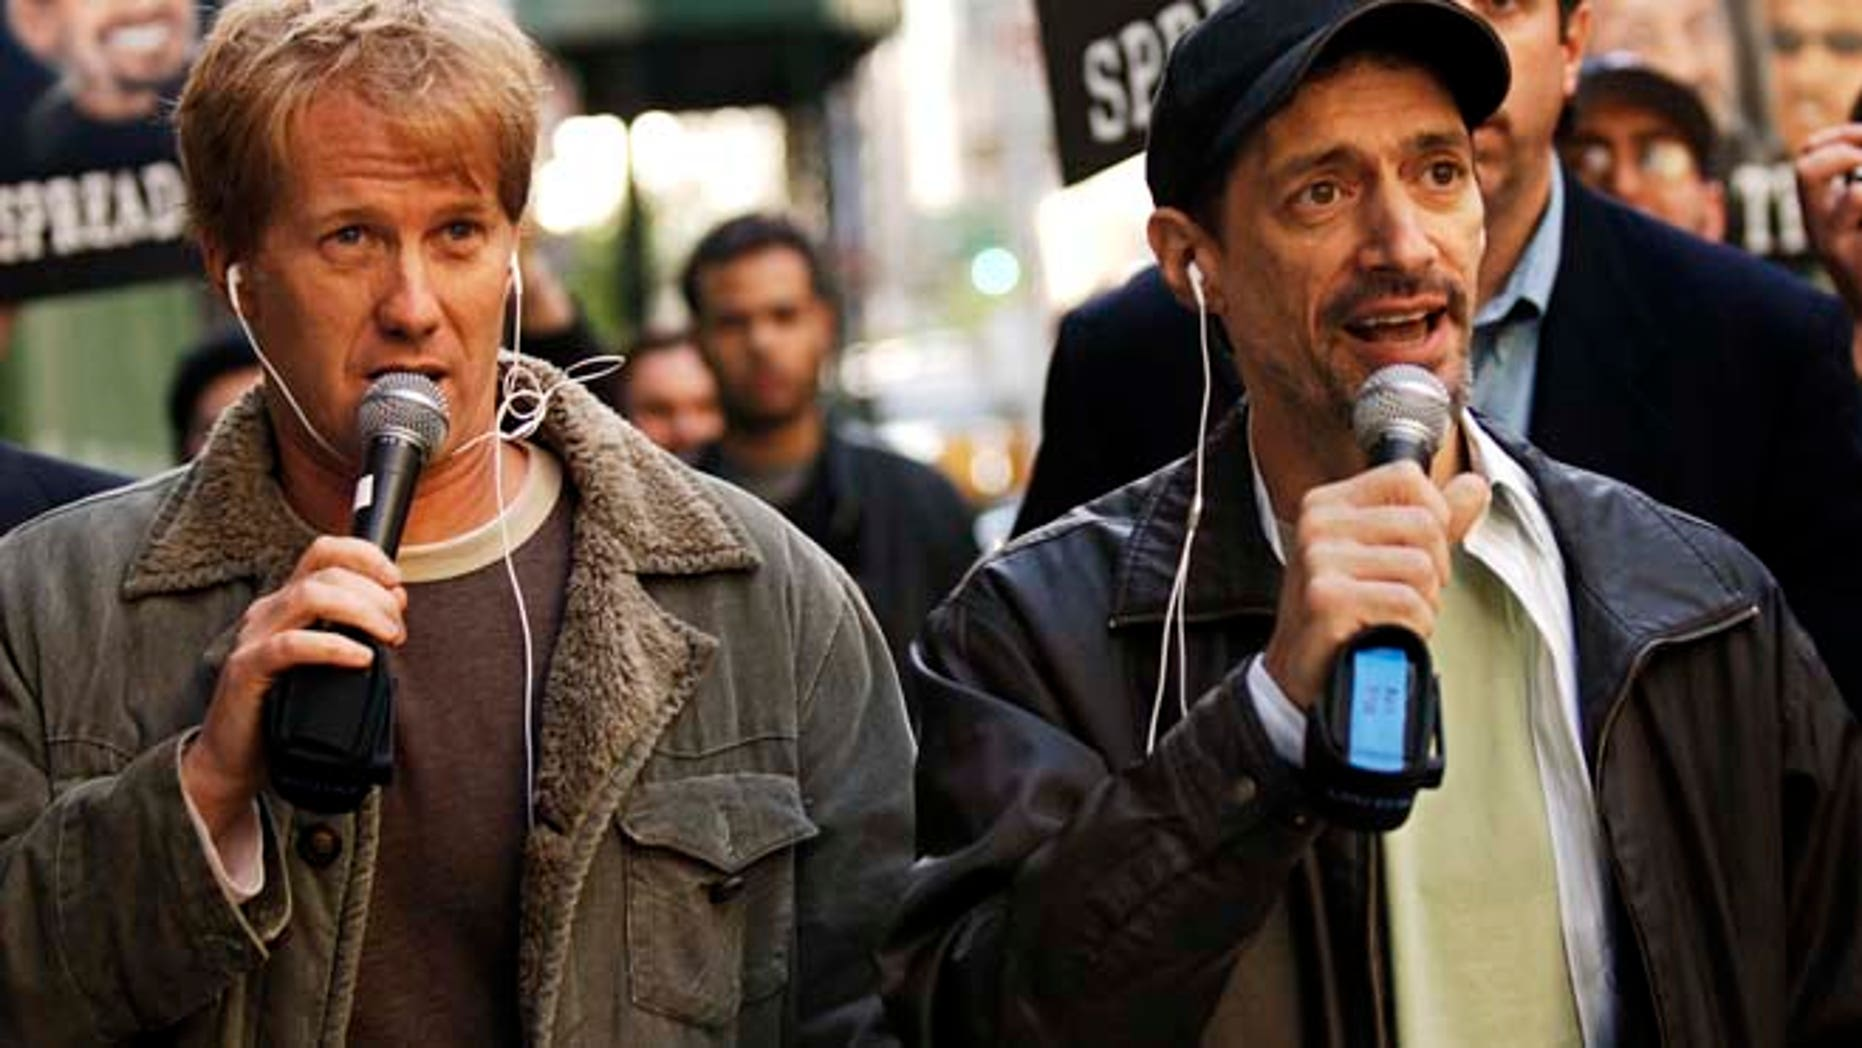 """In a April 26, 2006 file photo, radio shock jocks Greg """"Opie"""" Hughes, left, and Anthony Cumia, right, leave CBS Radio studios on 57th Street with fans after finishing their first morning show, in New York.  (AP)"""